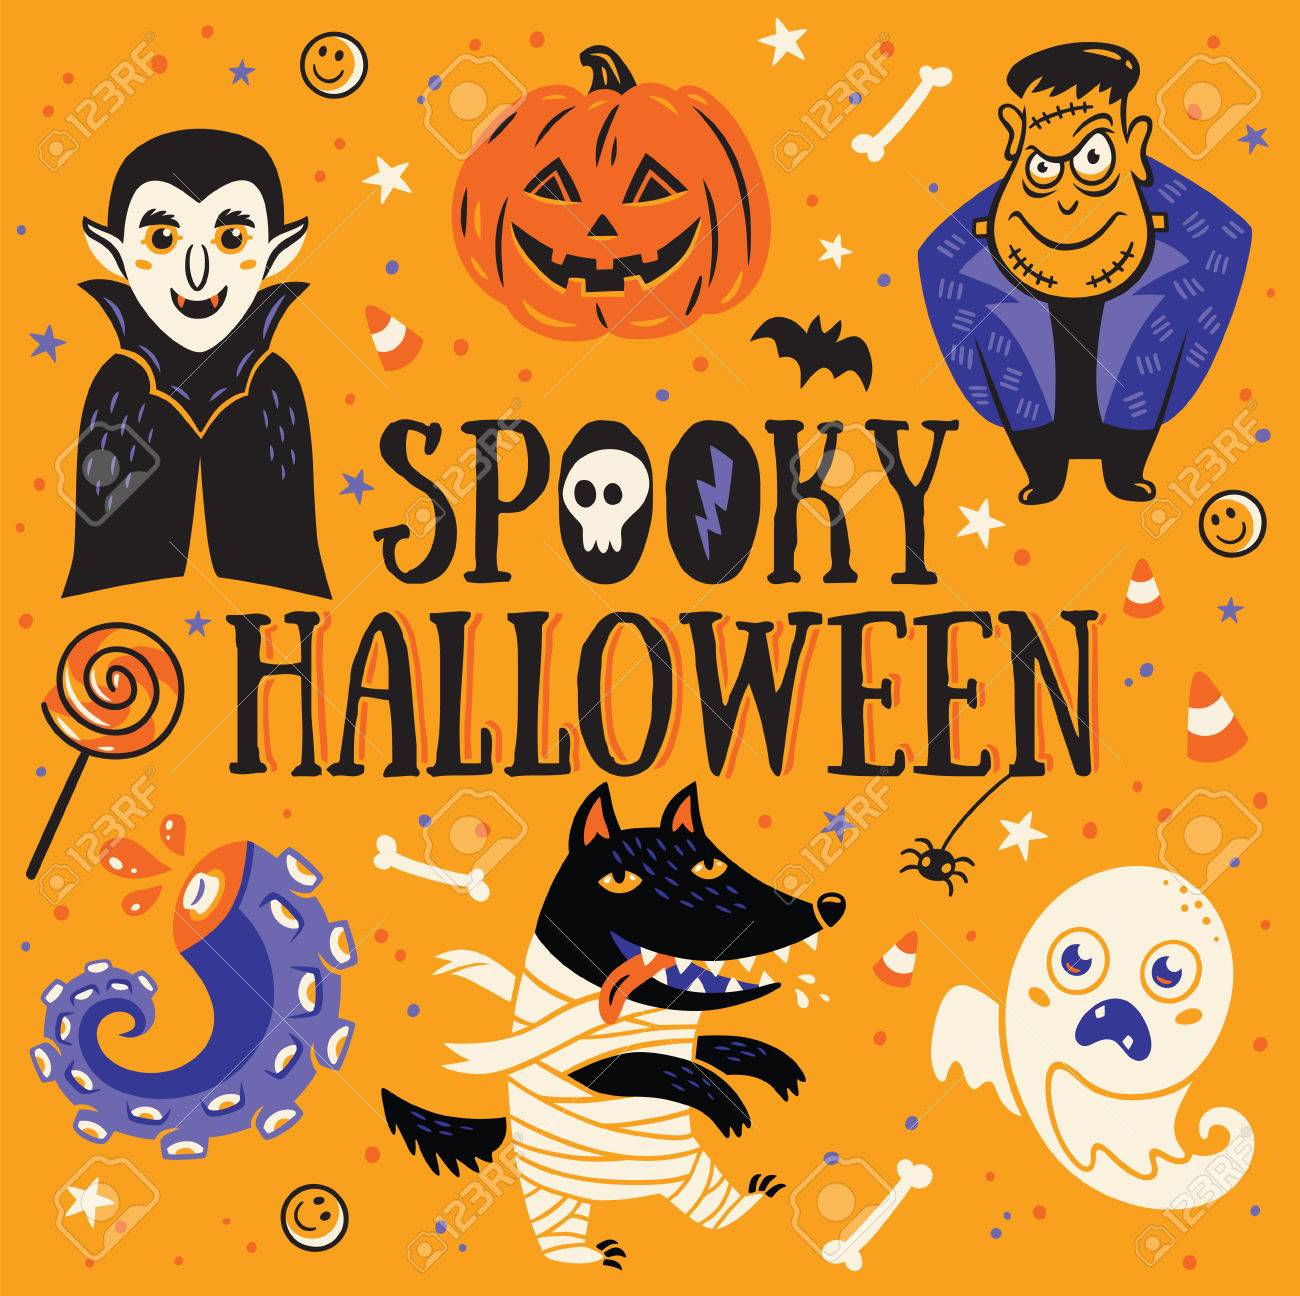 Spooky Halloween Poster Or Greeting Card With Cartoon Dracula And  Frankenstein, Pumpkin, Wolf,